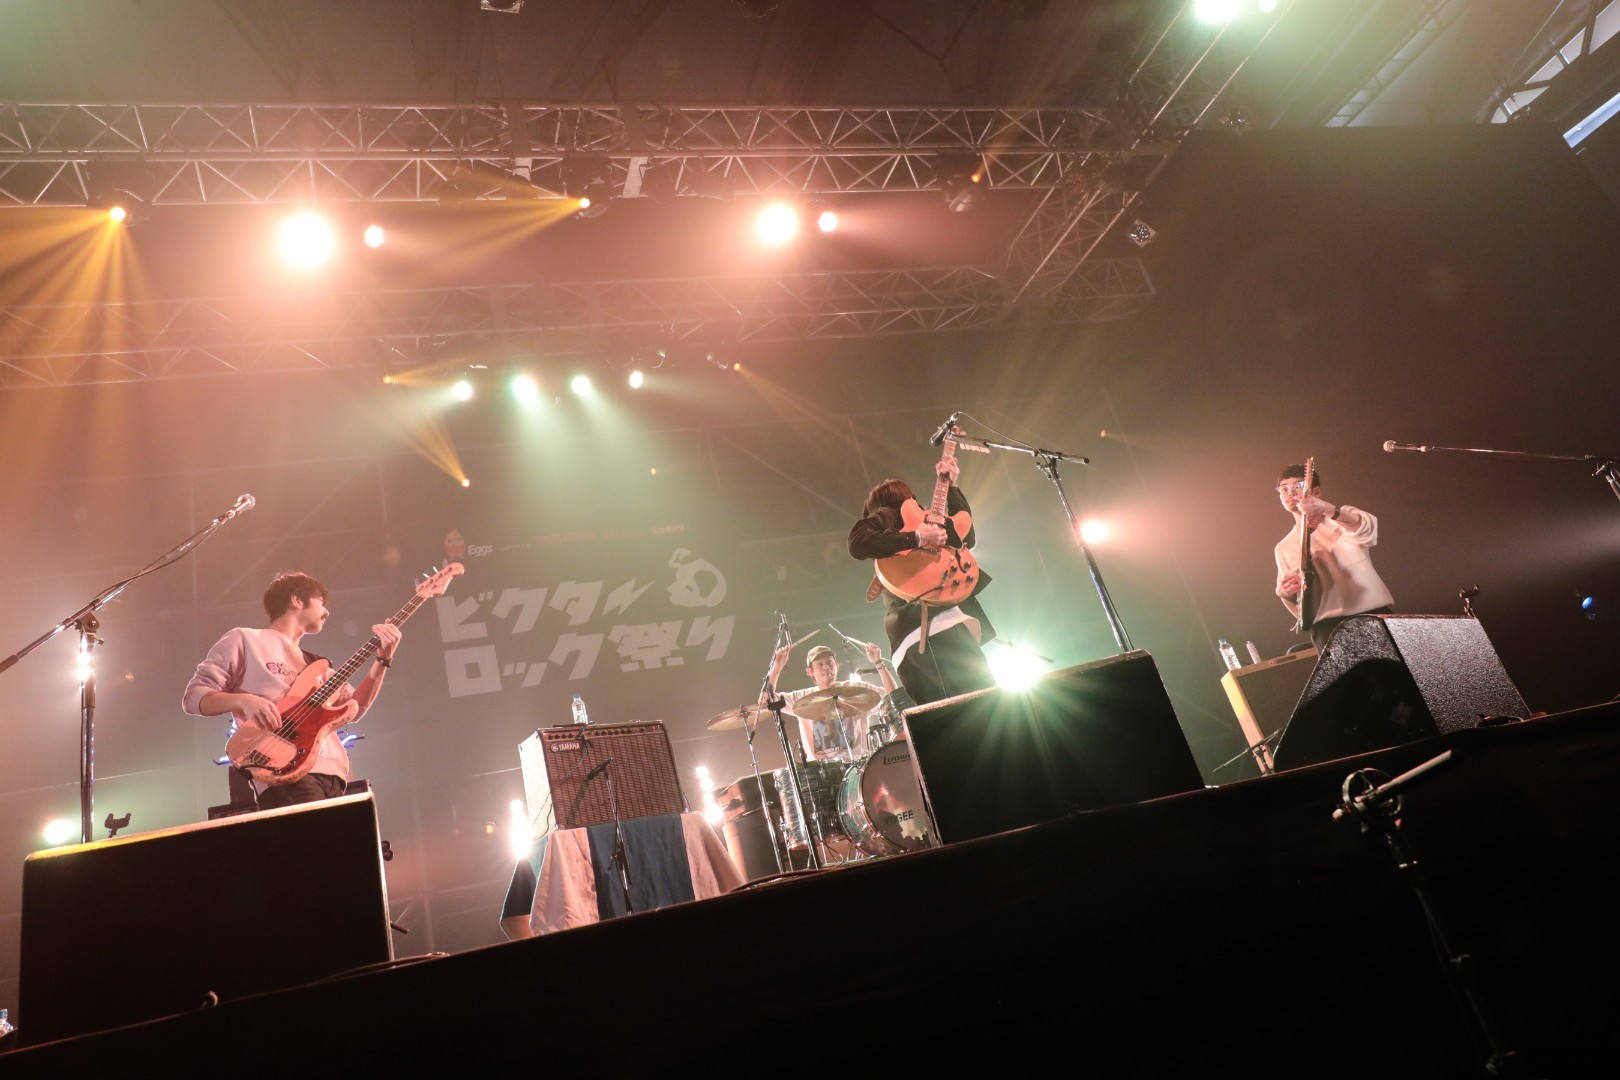 Yogee New Waves Photo by にしきゆみ(SOUND SHOOTER)